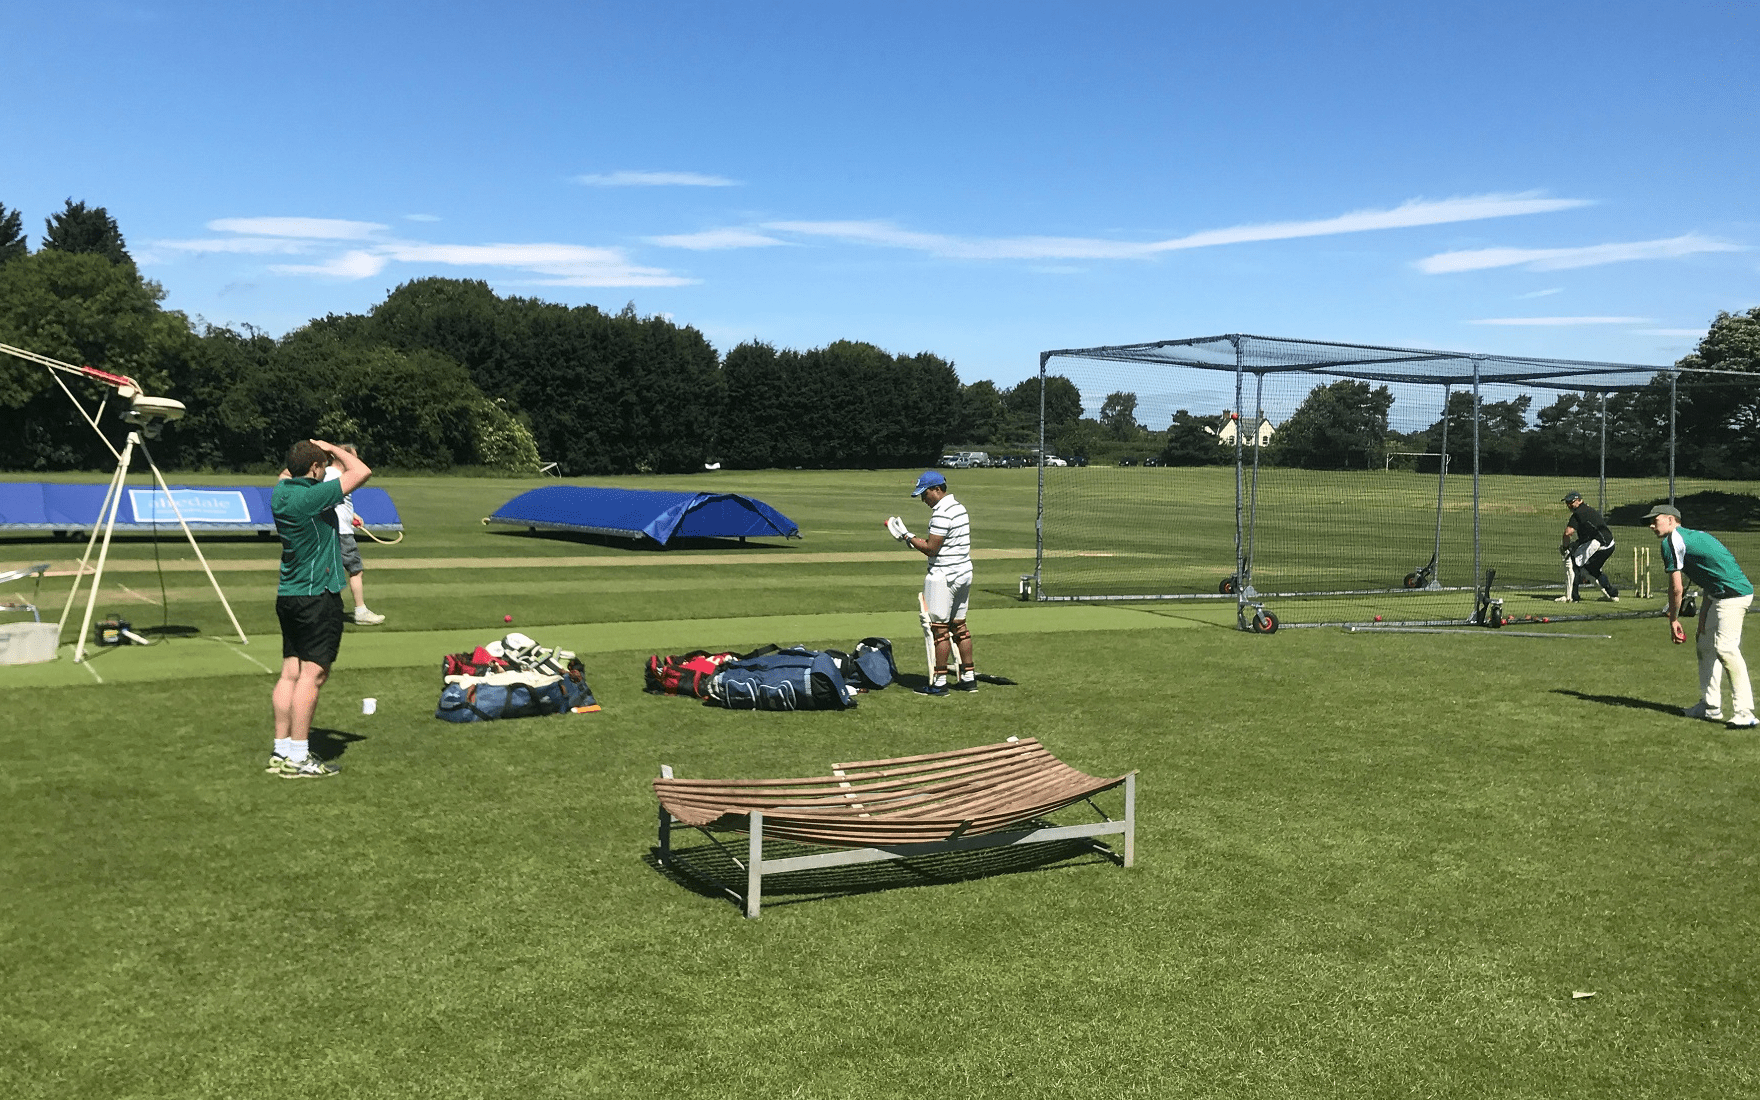 How Holmer Green Cricket Club worked with Give as you Live